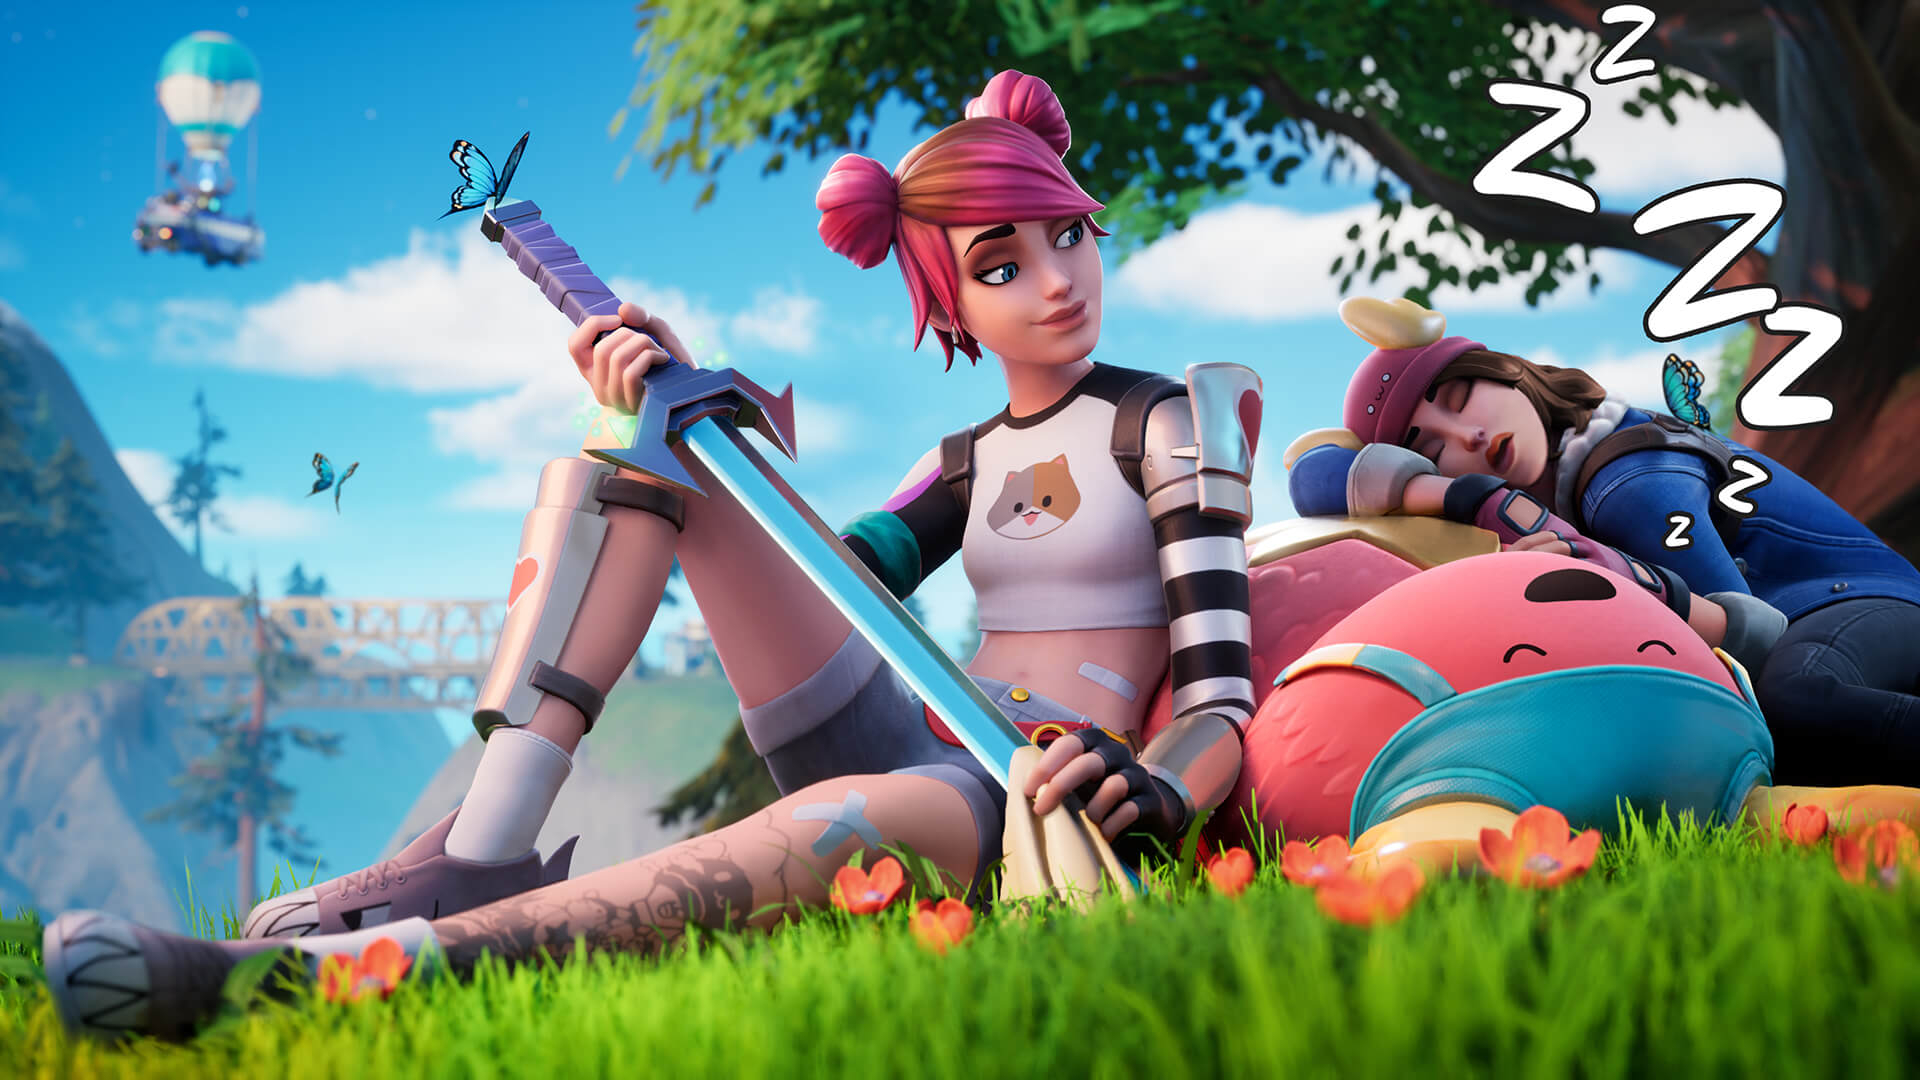 Fortnite Afternoon Quest Loading Screen